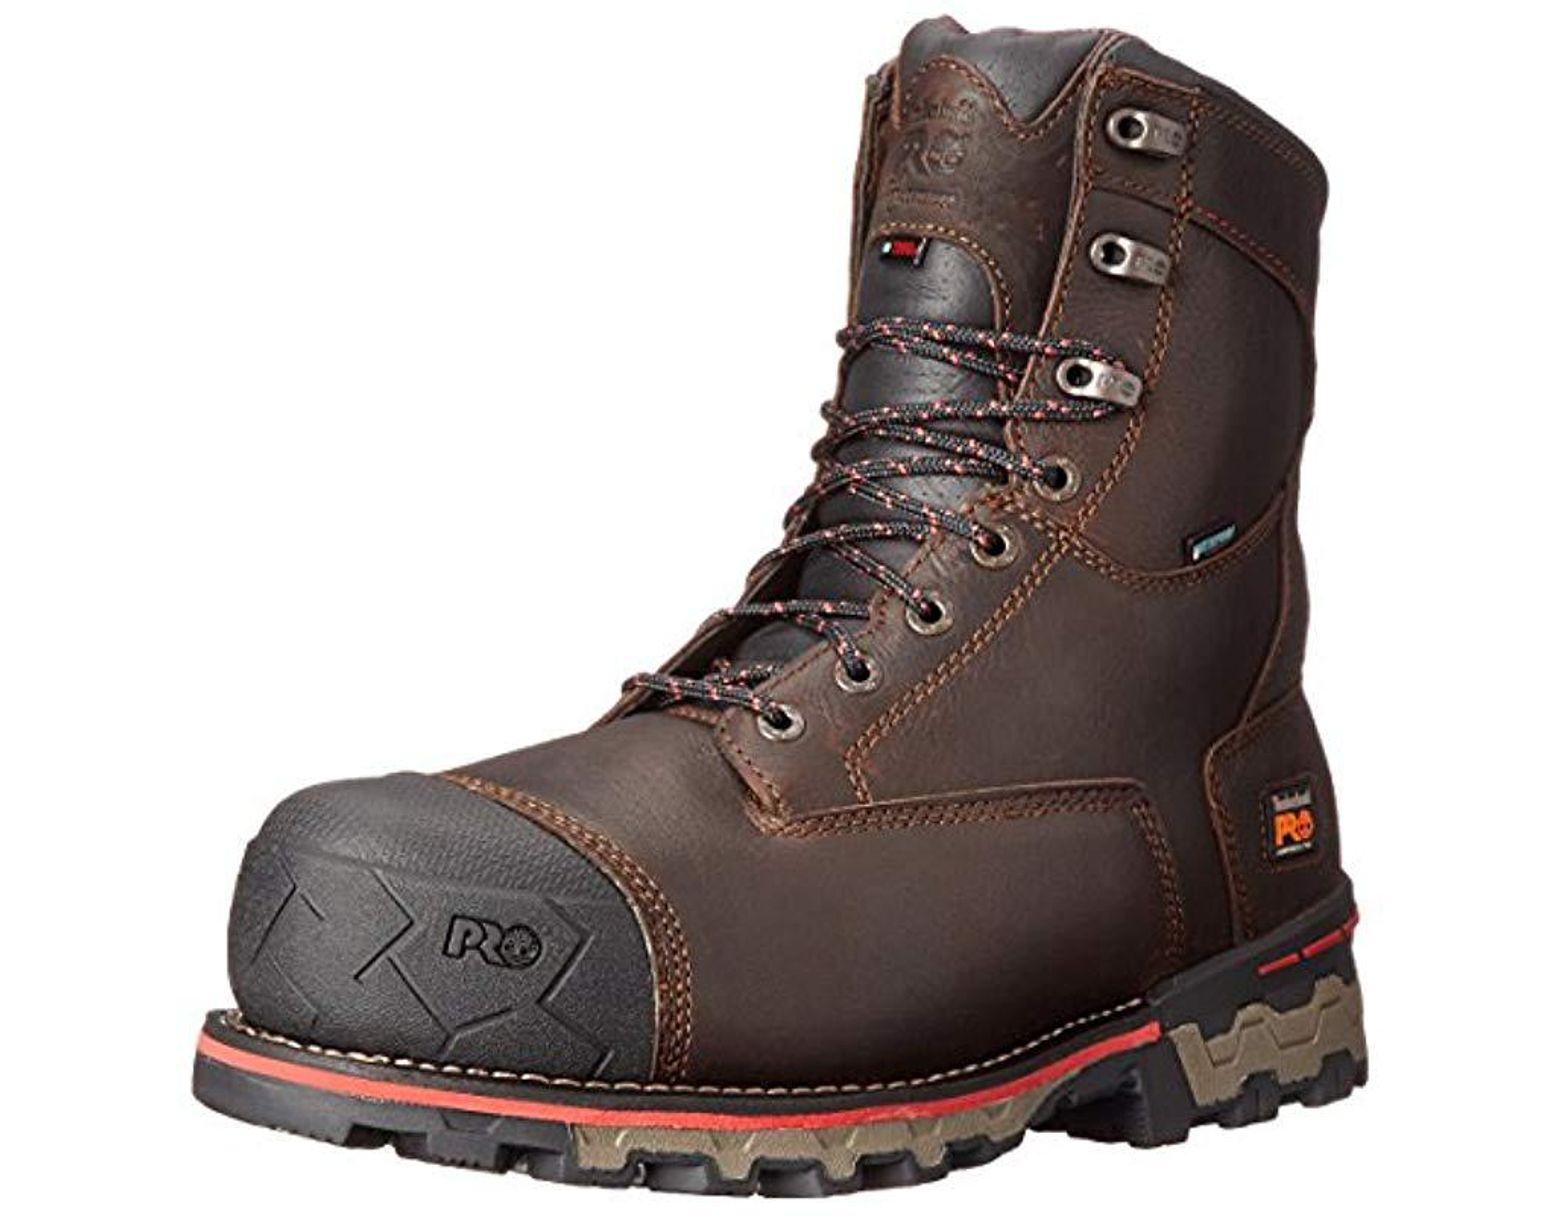 444e6ba51d7 Men's Brown 8 Boondock 1000g Composite Safety Toe Waterproof Insulated